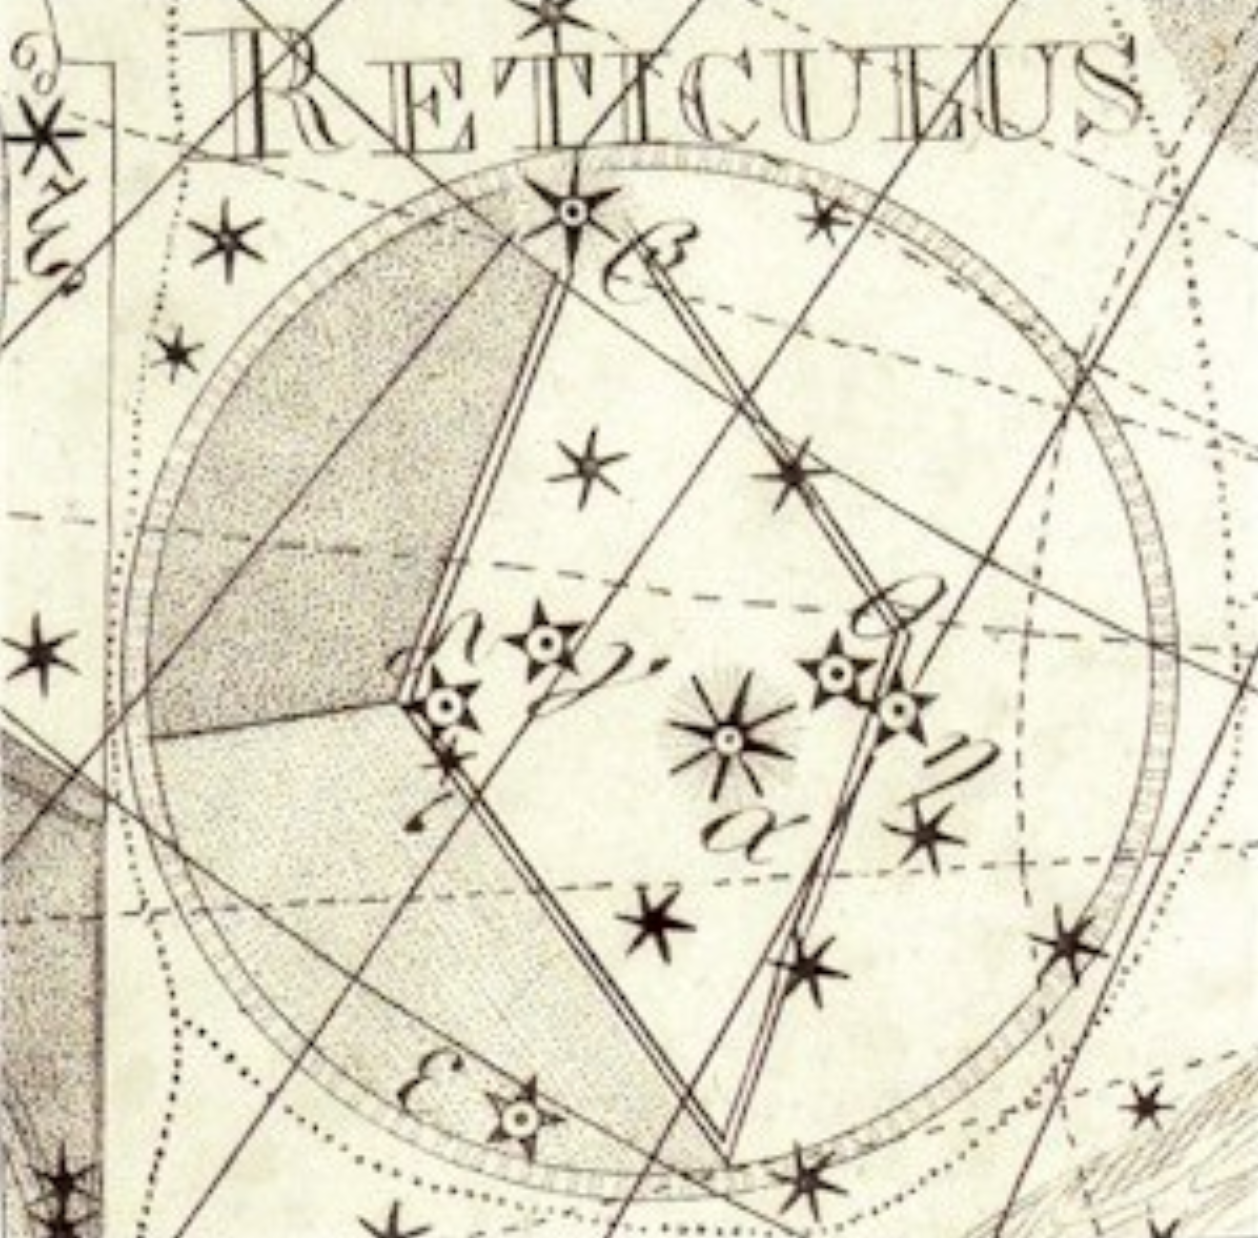 RETICULUM - The Civilization is intimately connected with Earth.